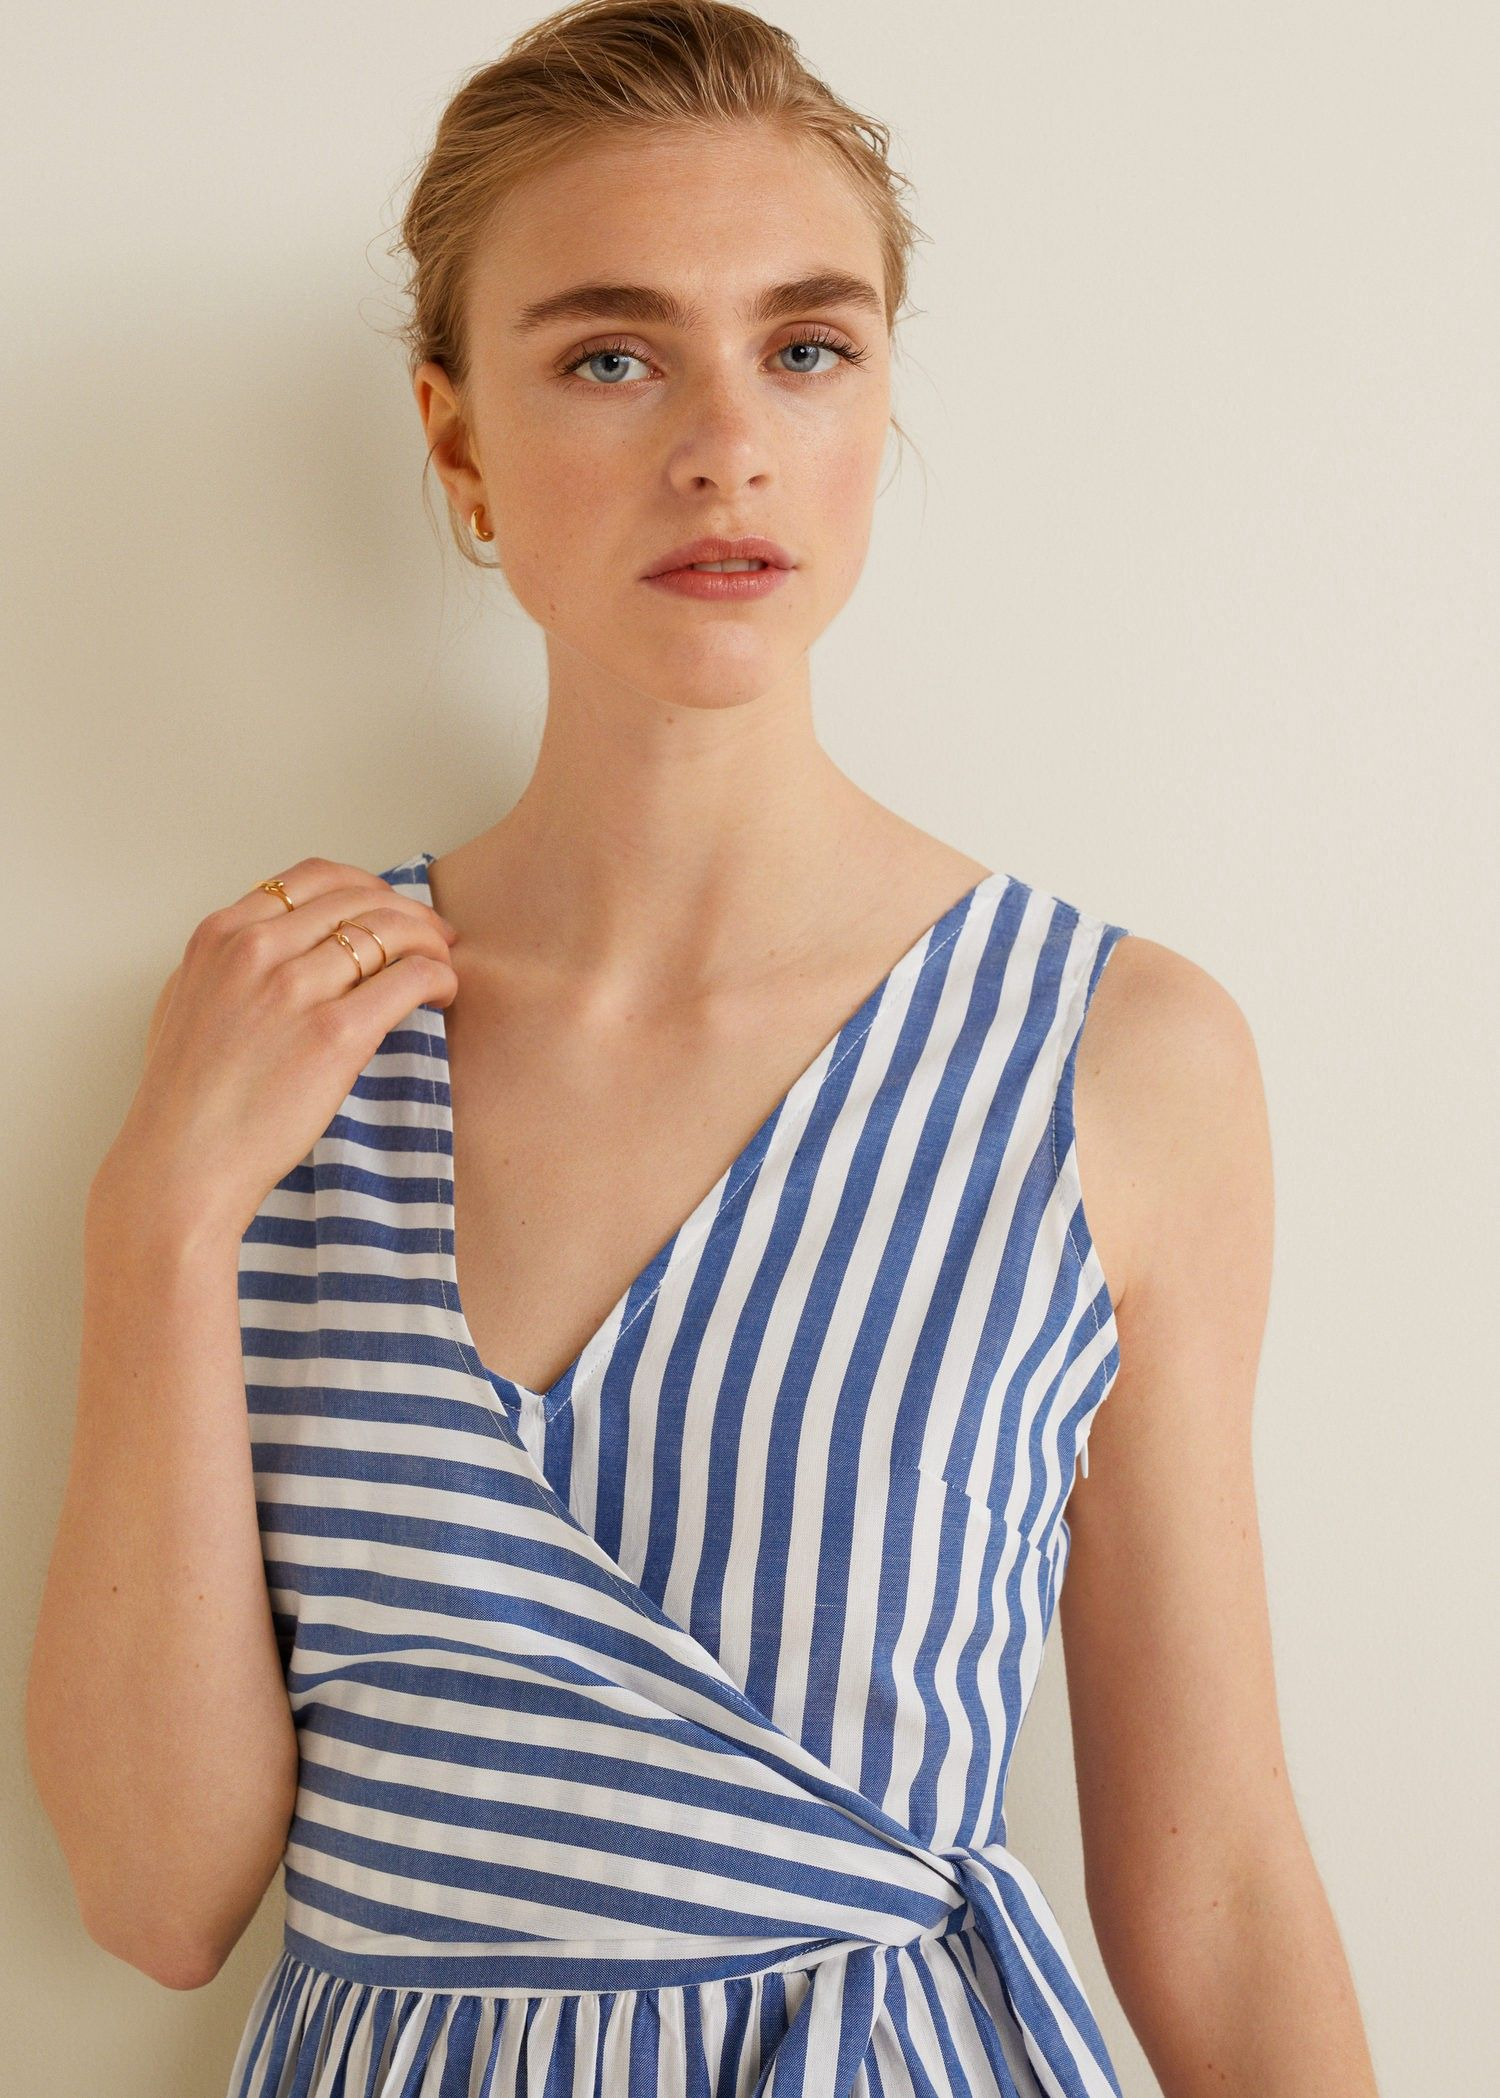 ff9acd21c32a Mango Striped Bow Dress - 2 | Products | Dresses, Dress with bow ...